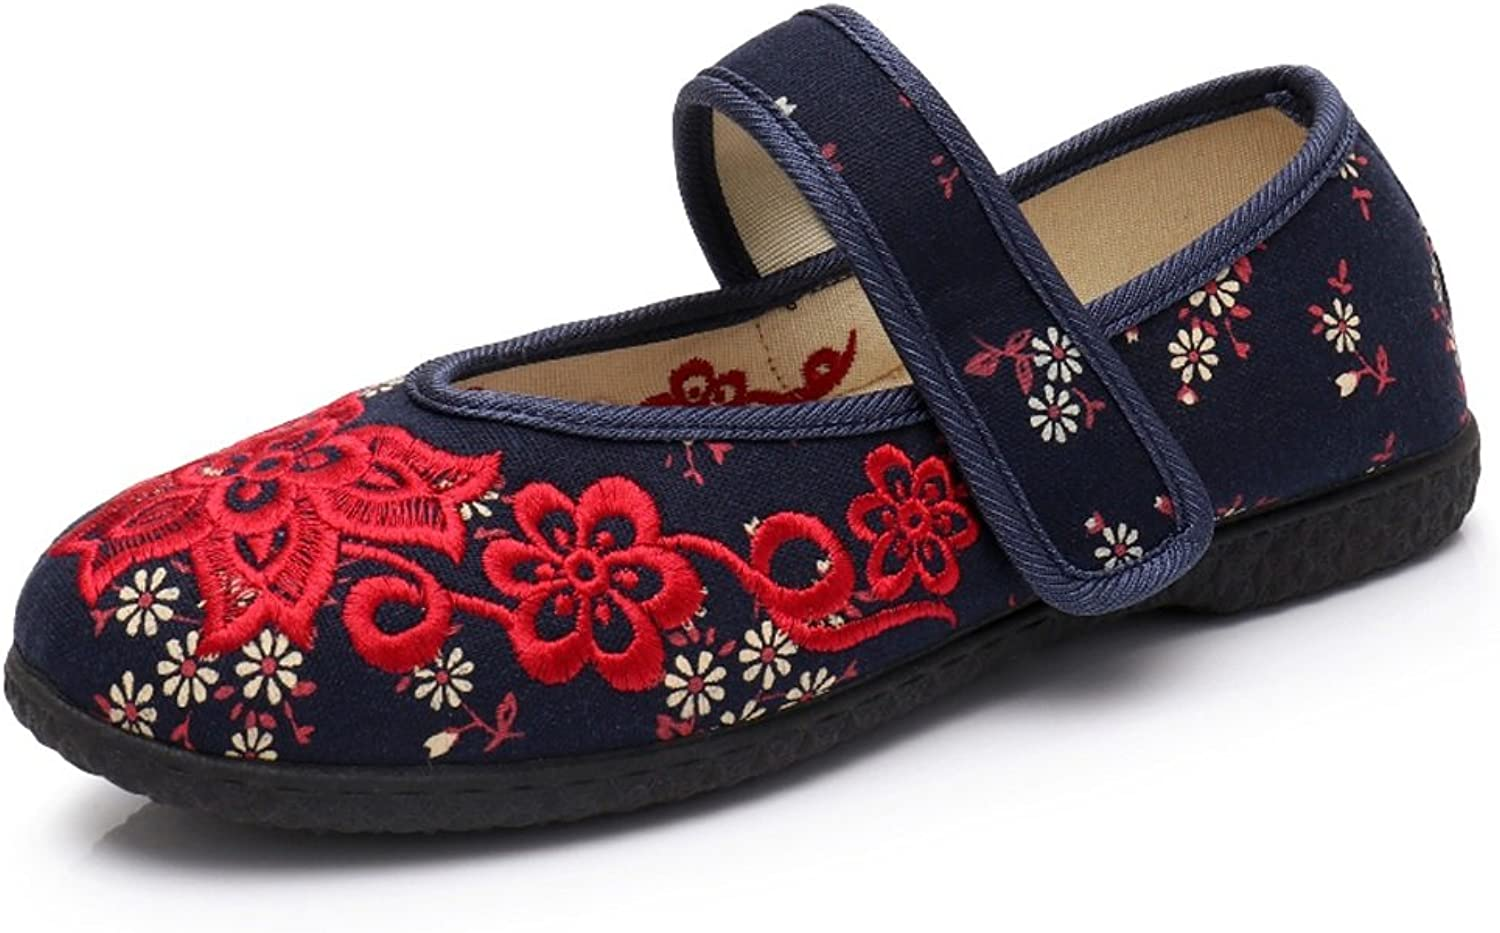 Women's National Wind Embroidered shoes Middle-Aged Flat Casual Cloth shoes Velcro Anti-Slip Mom shoes (color   bluee, Size   38)